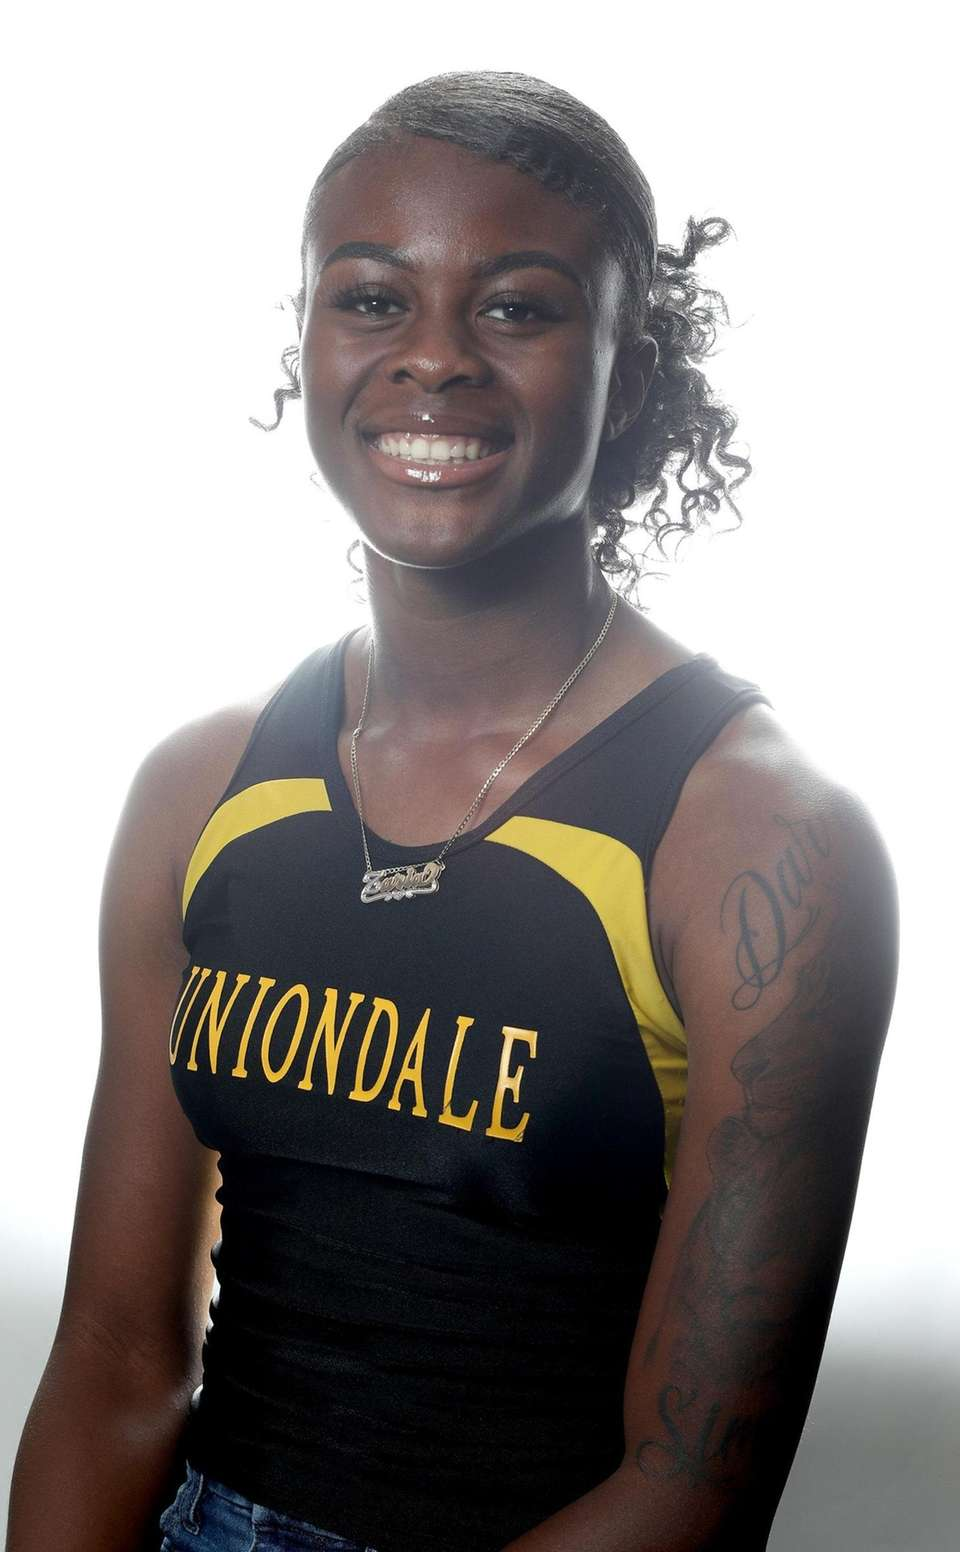 Girls Track - Zaria Fuller, Uniondale High School